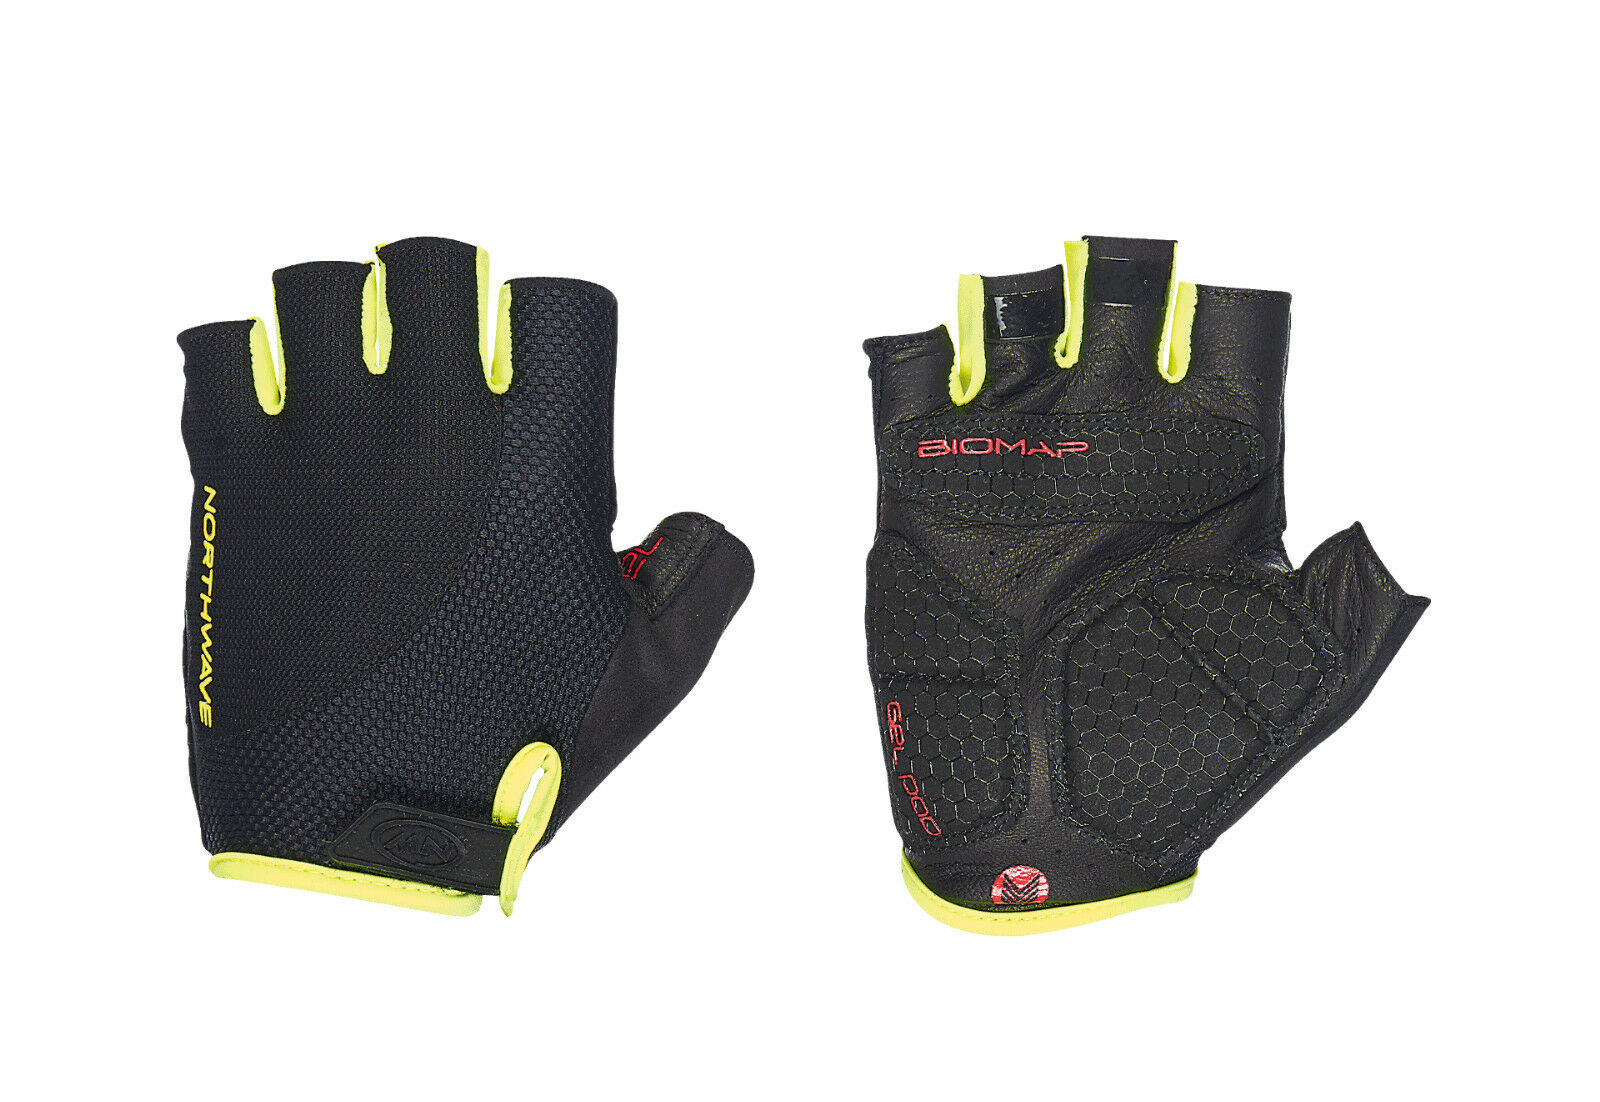 Wimper Handschuhe Sommer Northwave extreme black yellow fluo  Sommer  the newest